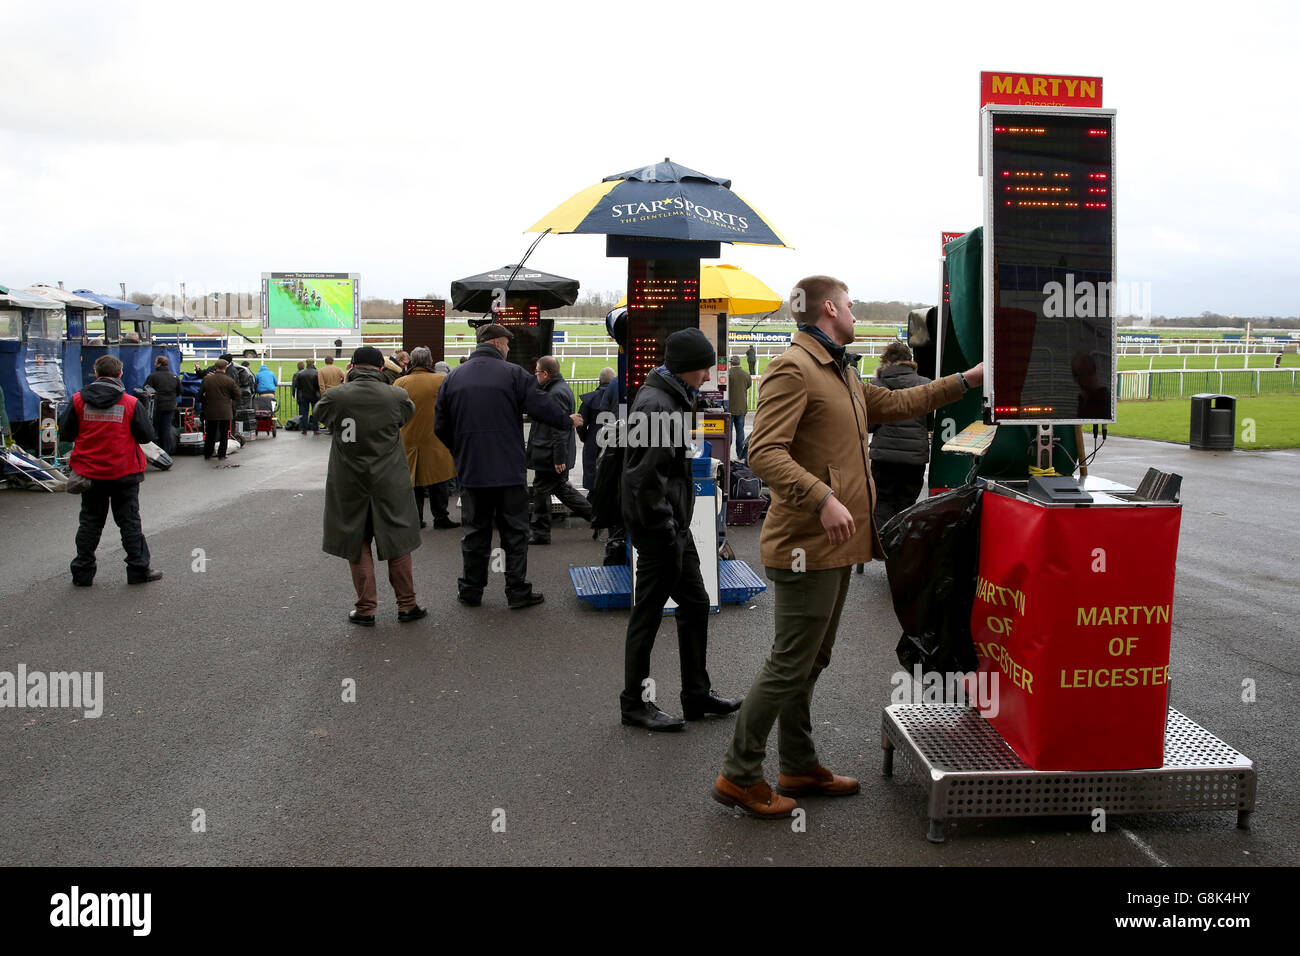 Kempton Park Races - William Hill Lanzarote Day Stock Photo